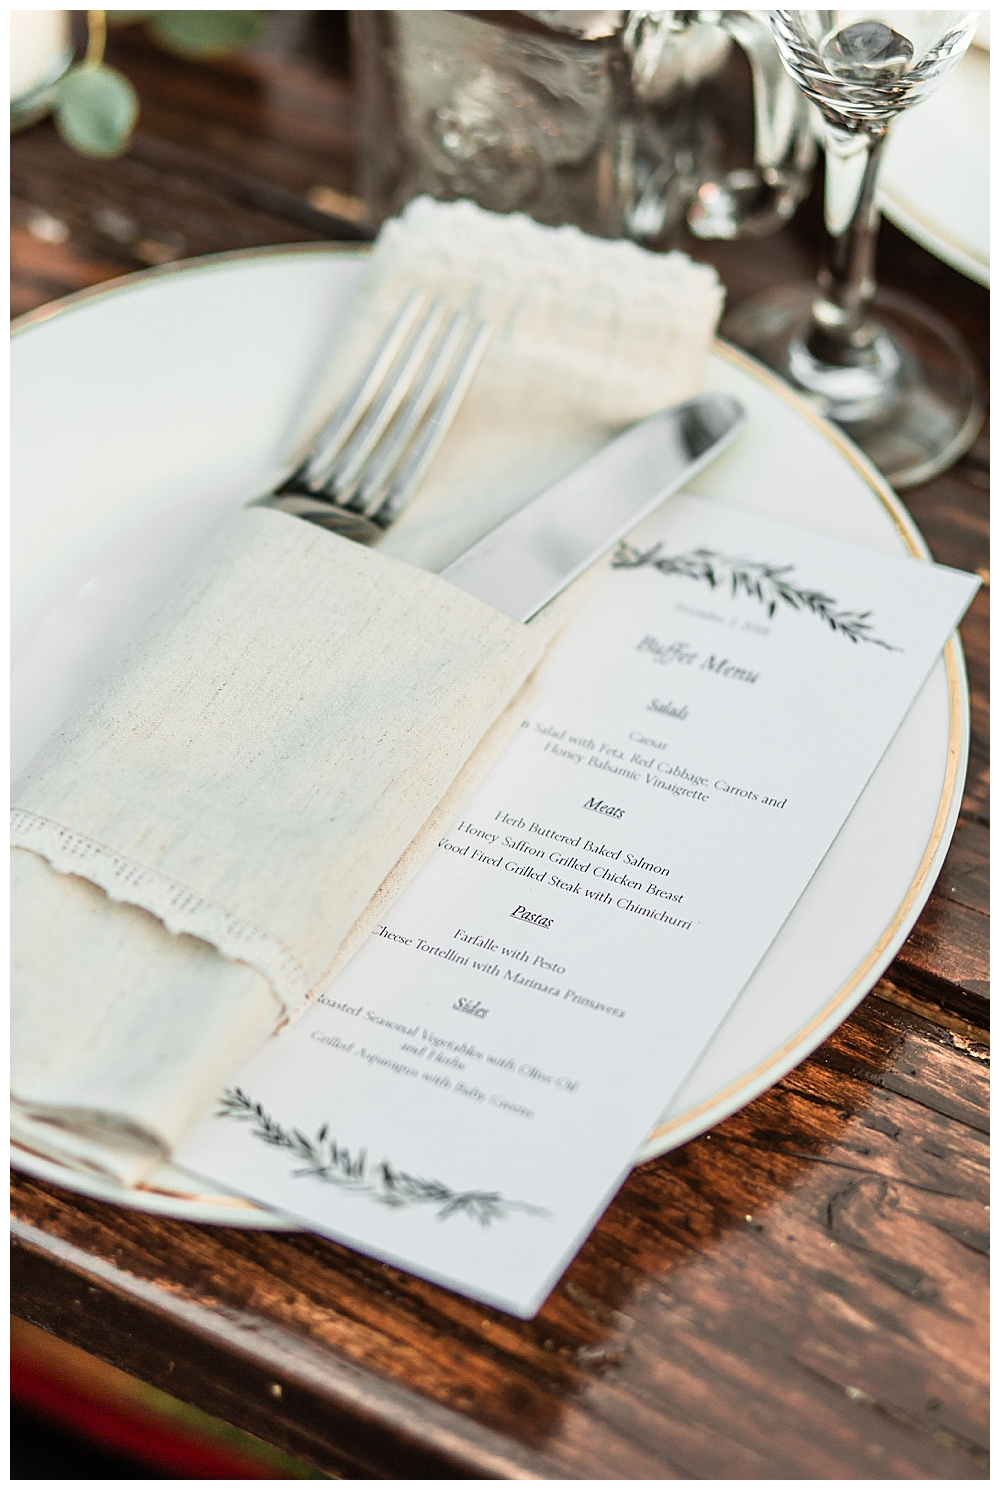 buffet-menu-for-wedding-reception